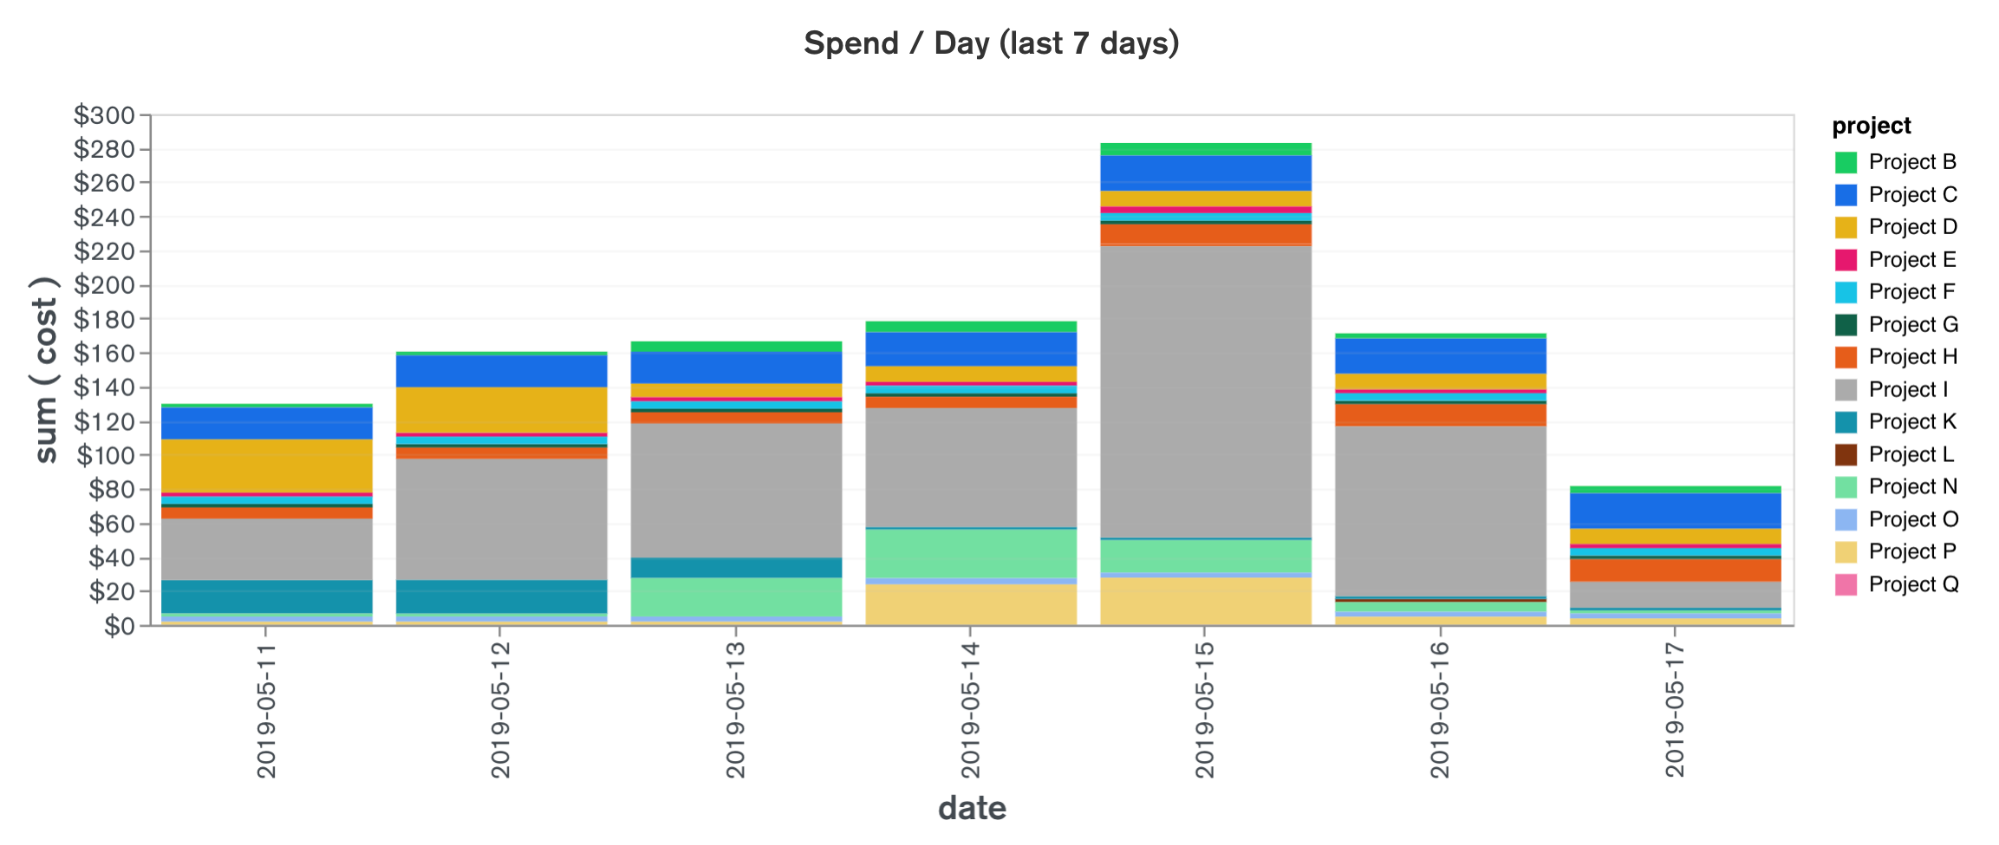 Spend per day for the last 7 days